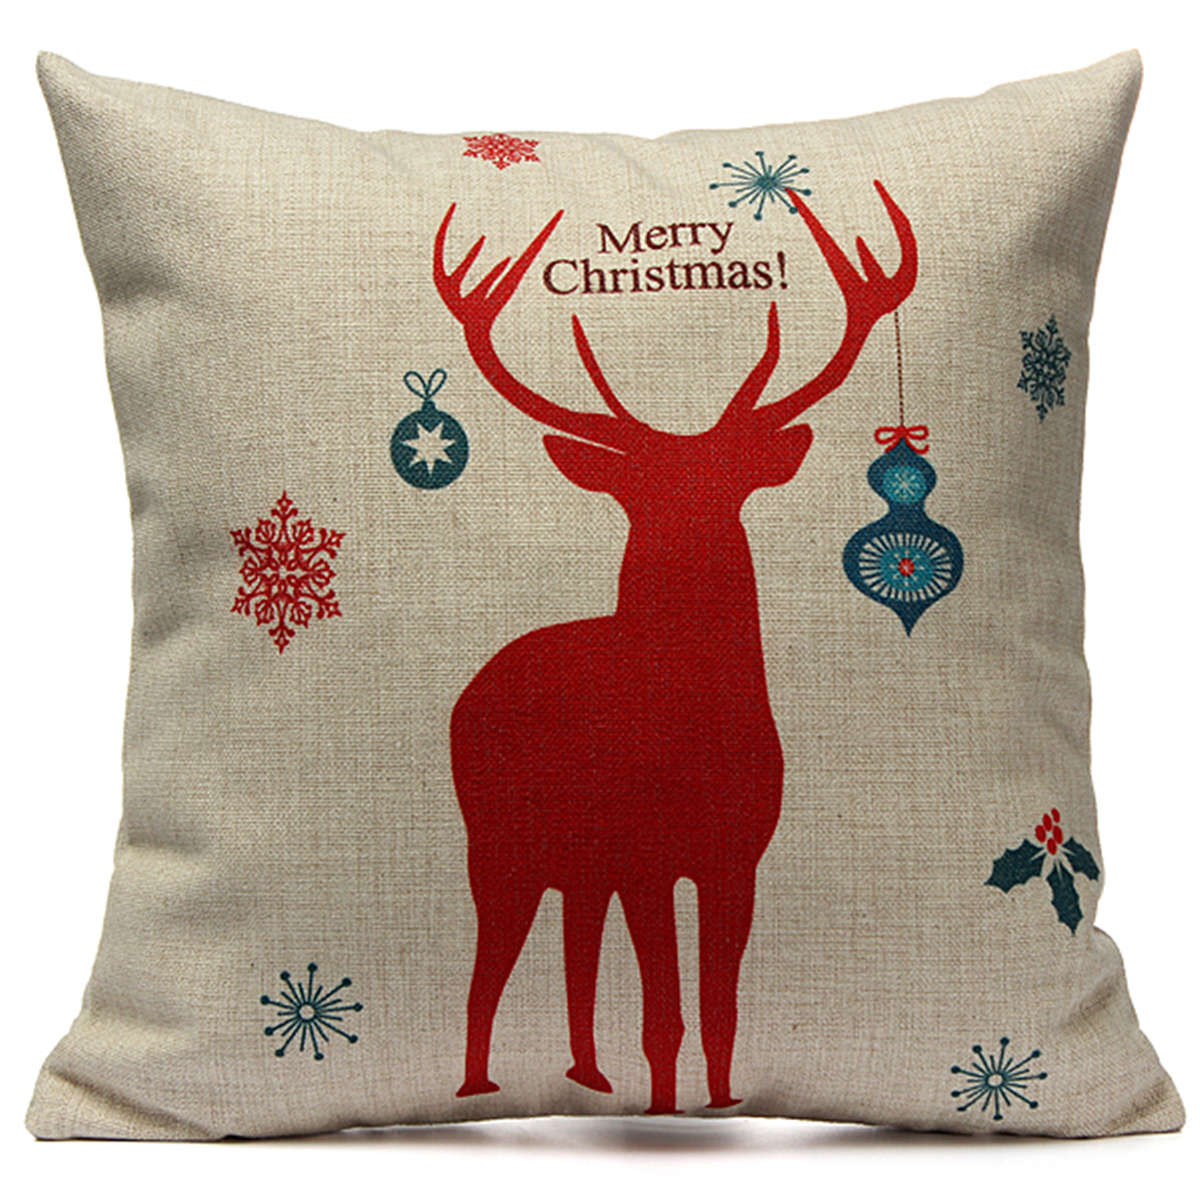 Christmas Cushion Cover Xmas Ambience Decorative Square Pillow Case Car Decor eBay